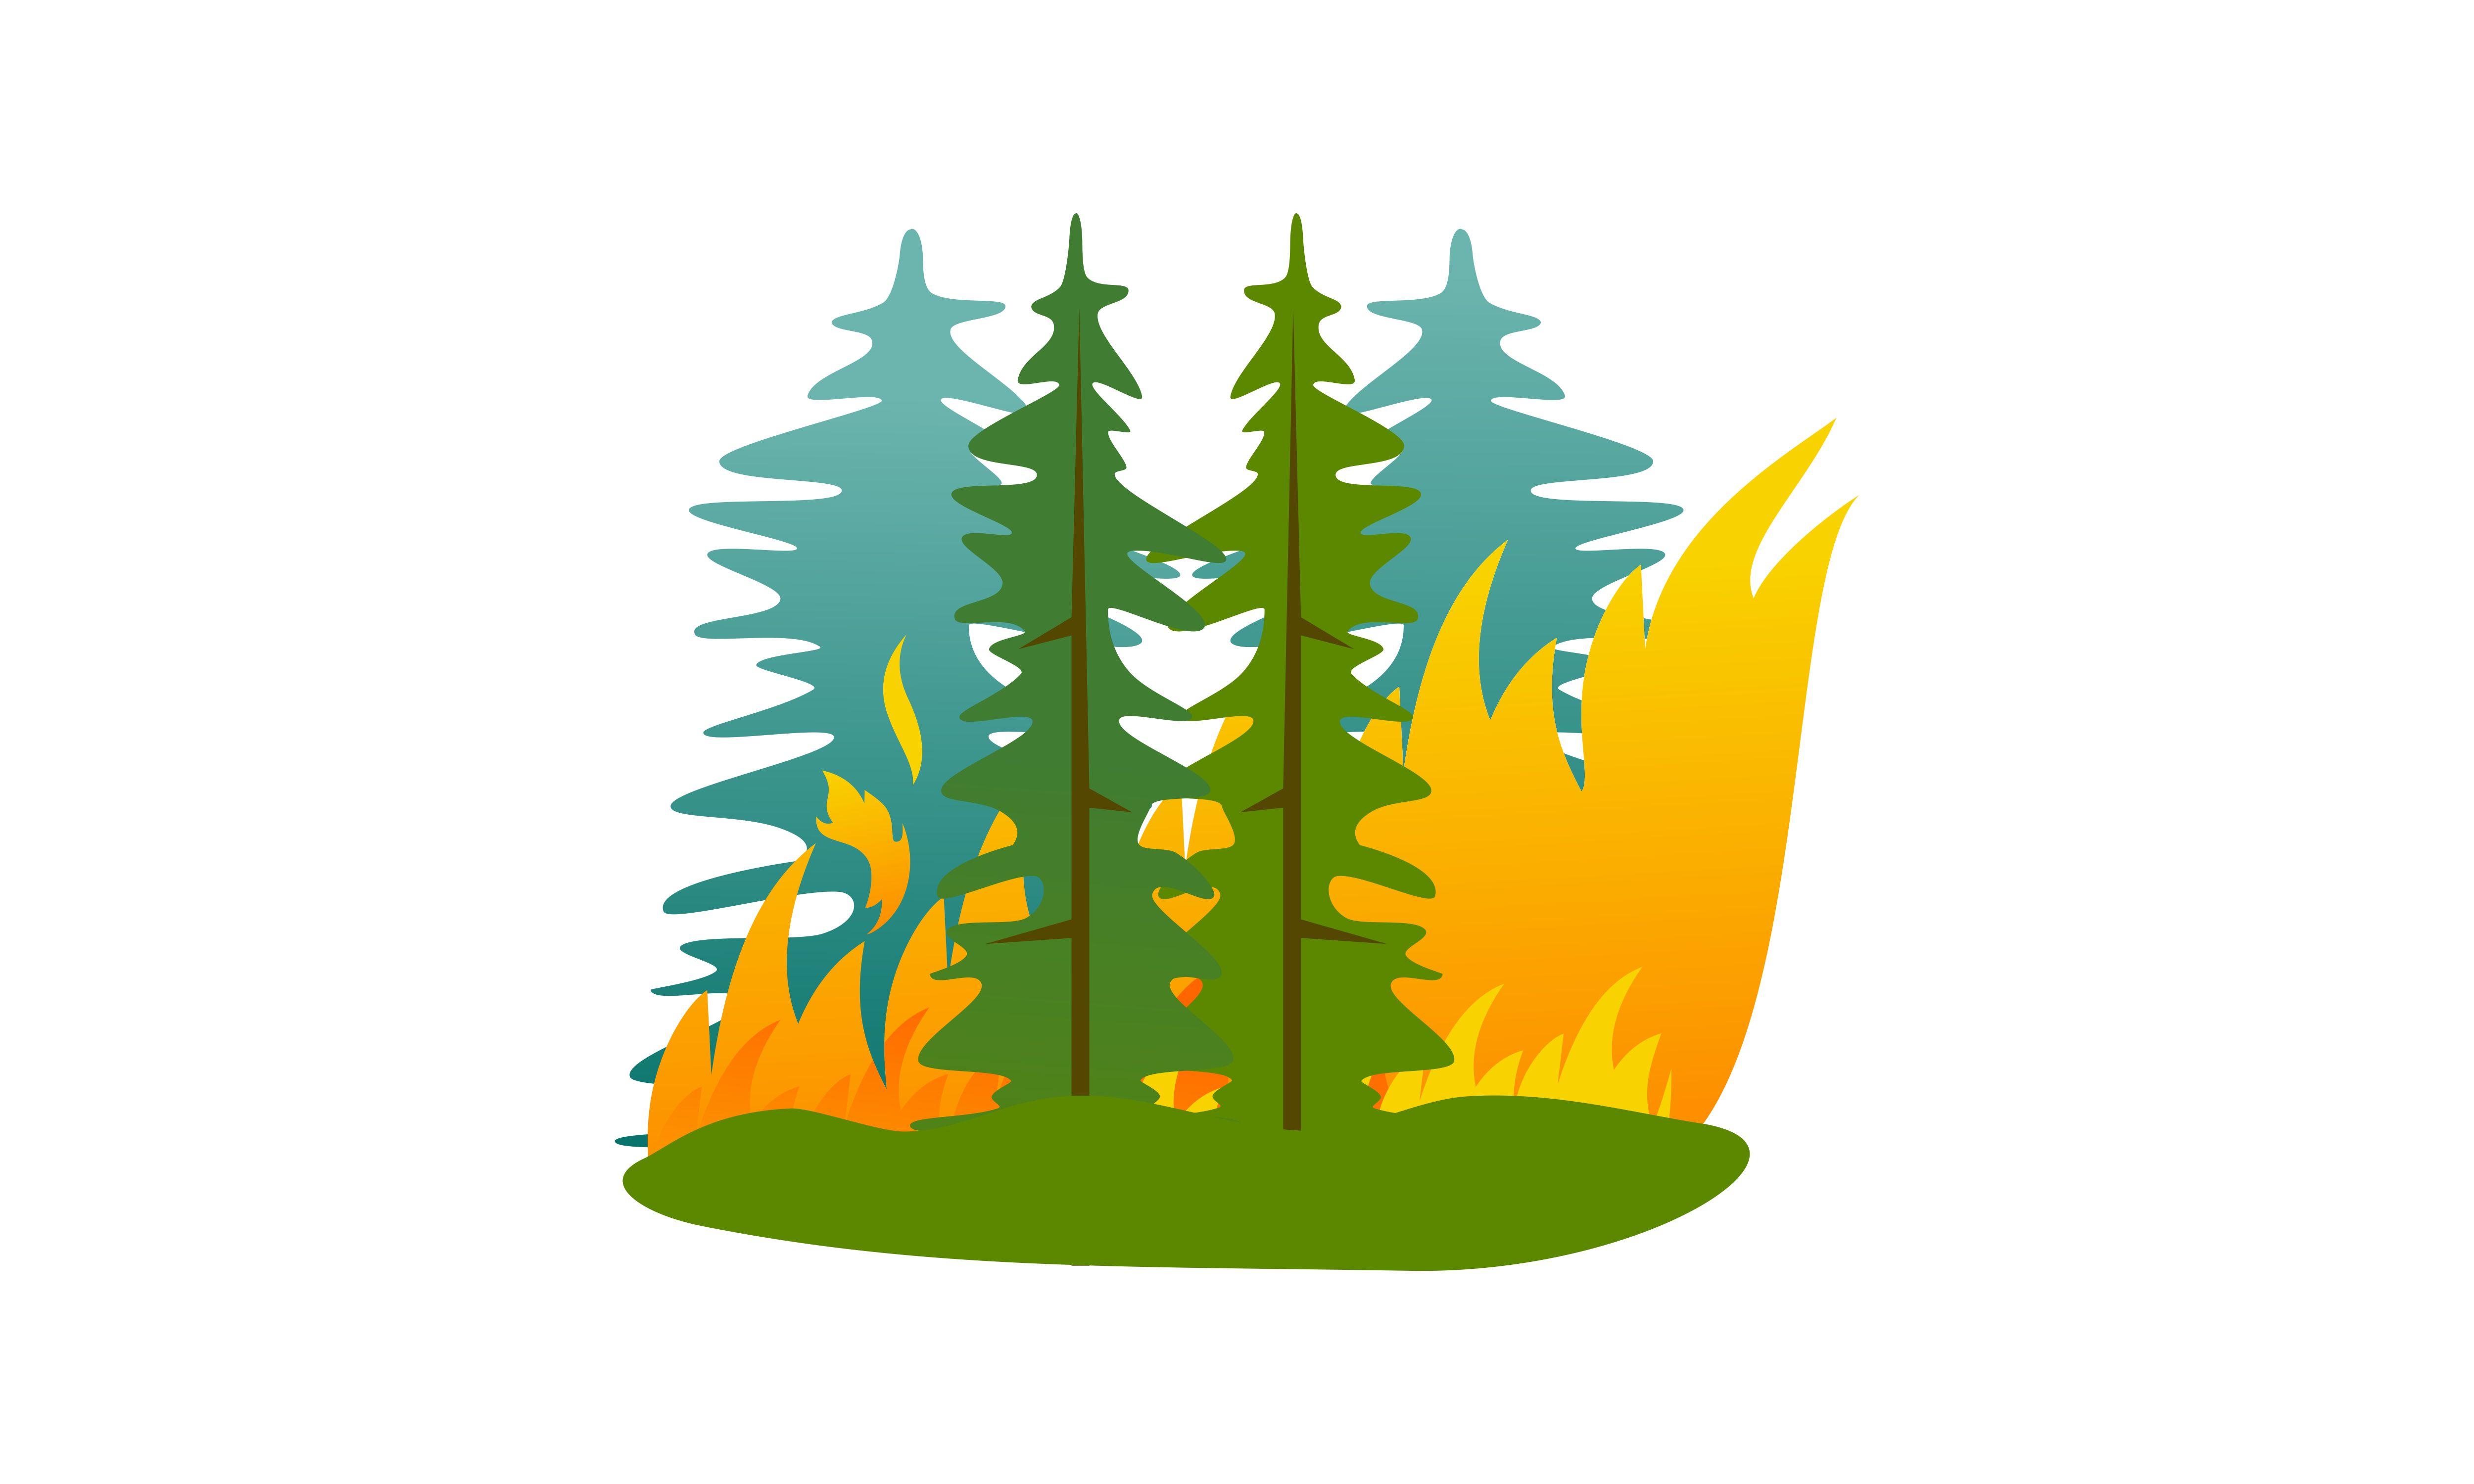 Download Free Forest Fire Natural Disaster Concept Graphic By Deemka Studio for Cricut Explore, Silhouette and other cutting machines.